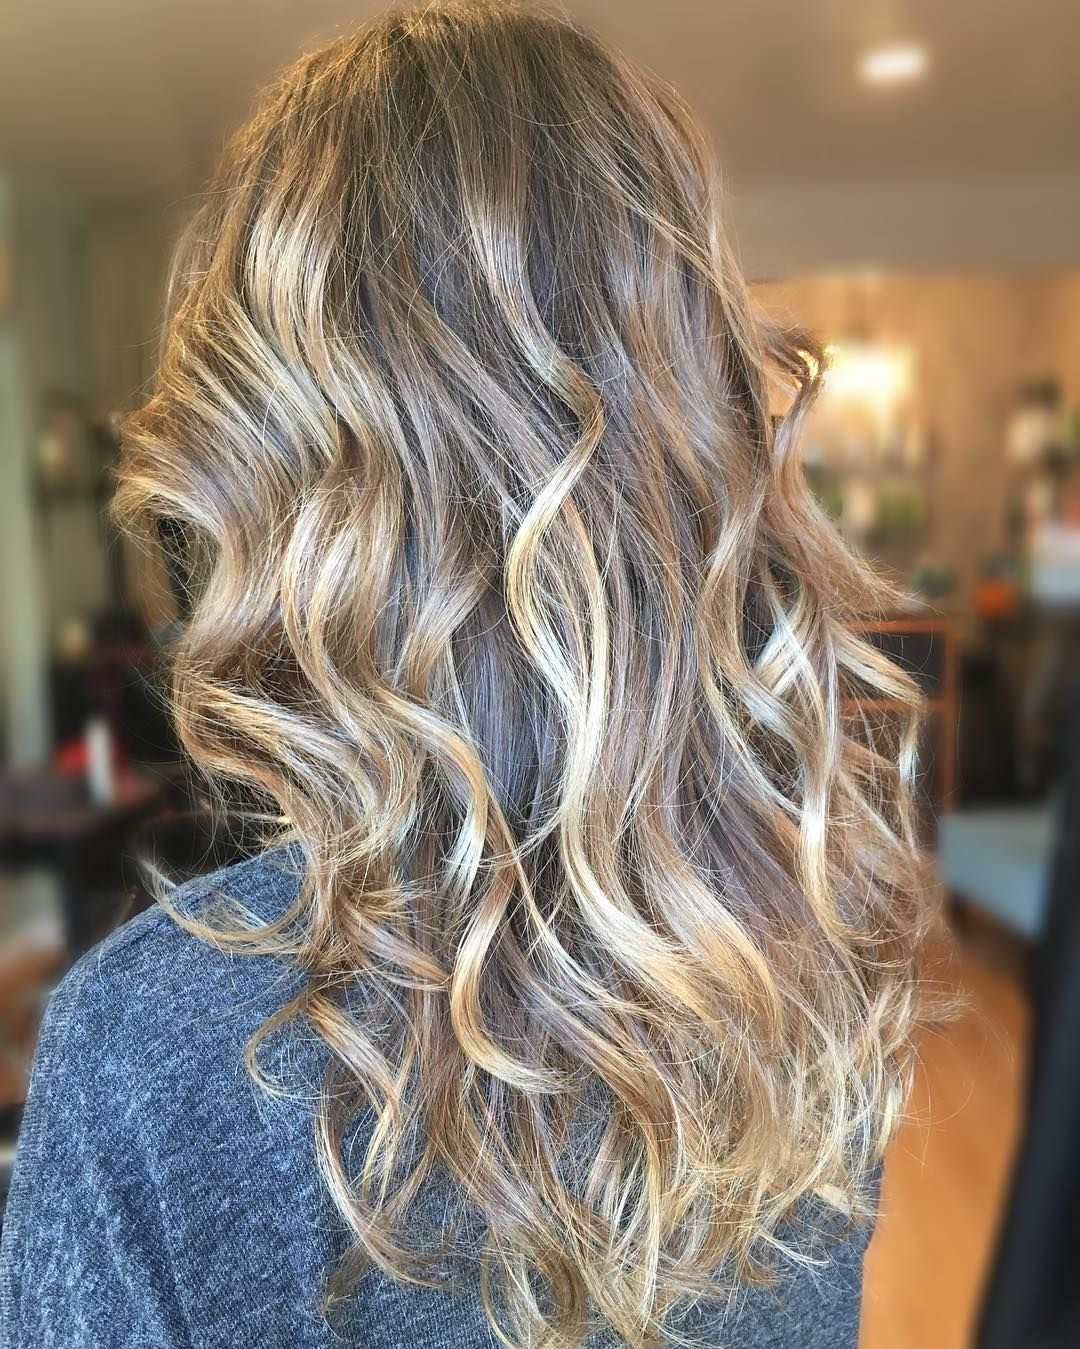 Dark Blonde Wavy Hair With Subtle Painted White Blonde Balayage Highlights White Ombre Hair Dark Blonde Hair Blonde Wavy Hair